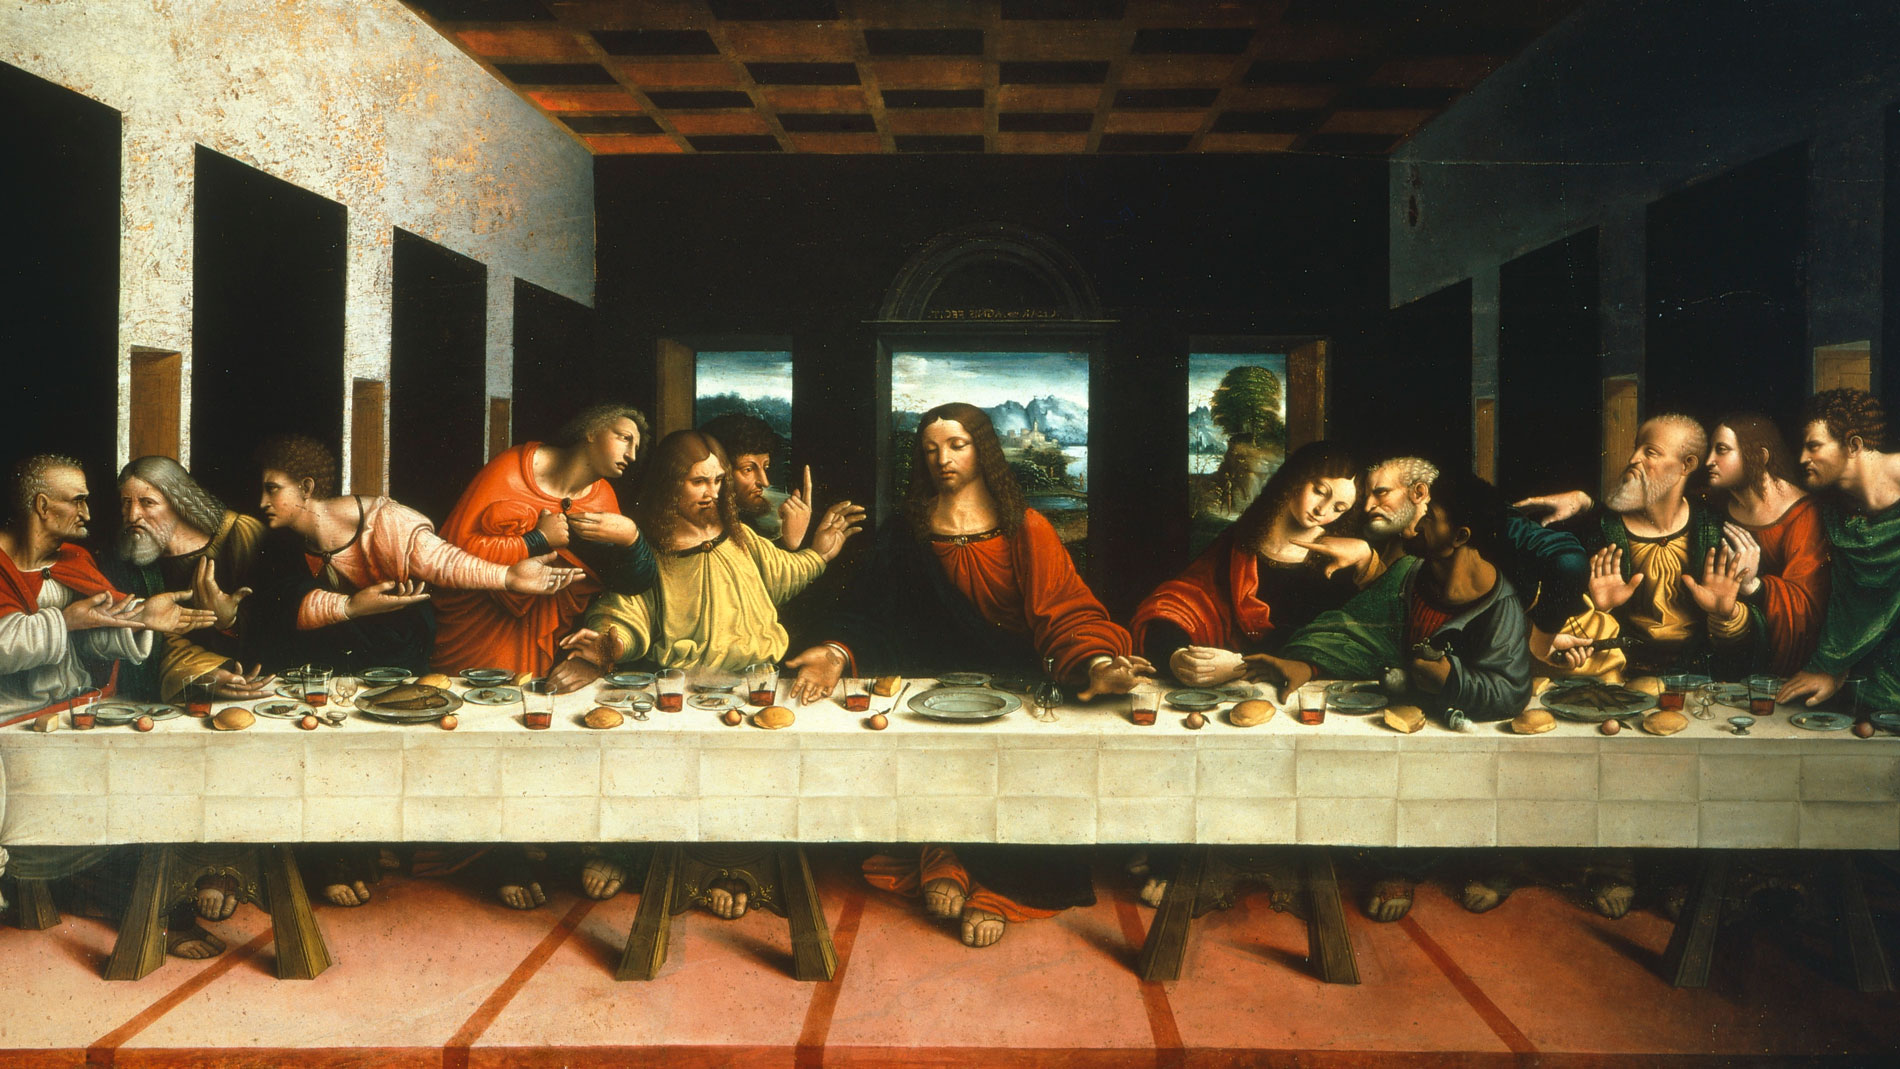 What Did Jesus and the Apostles Eat at the Last Supper?